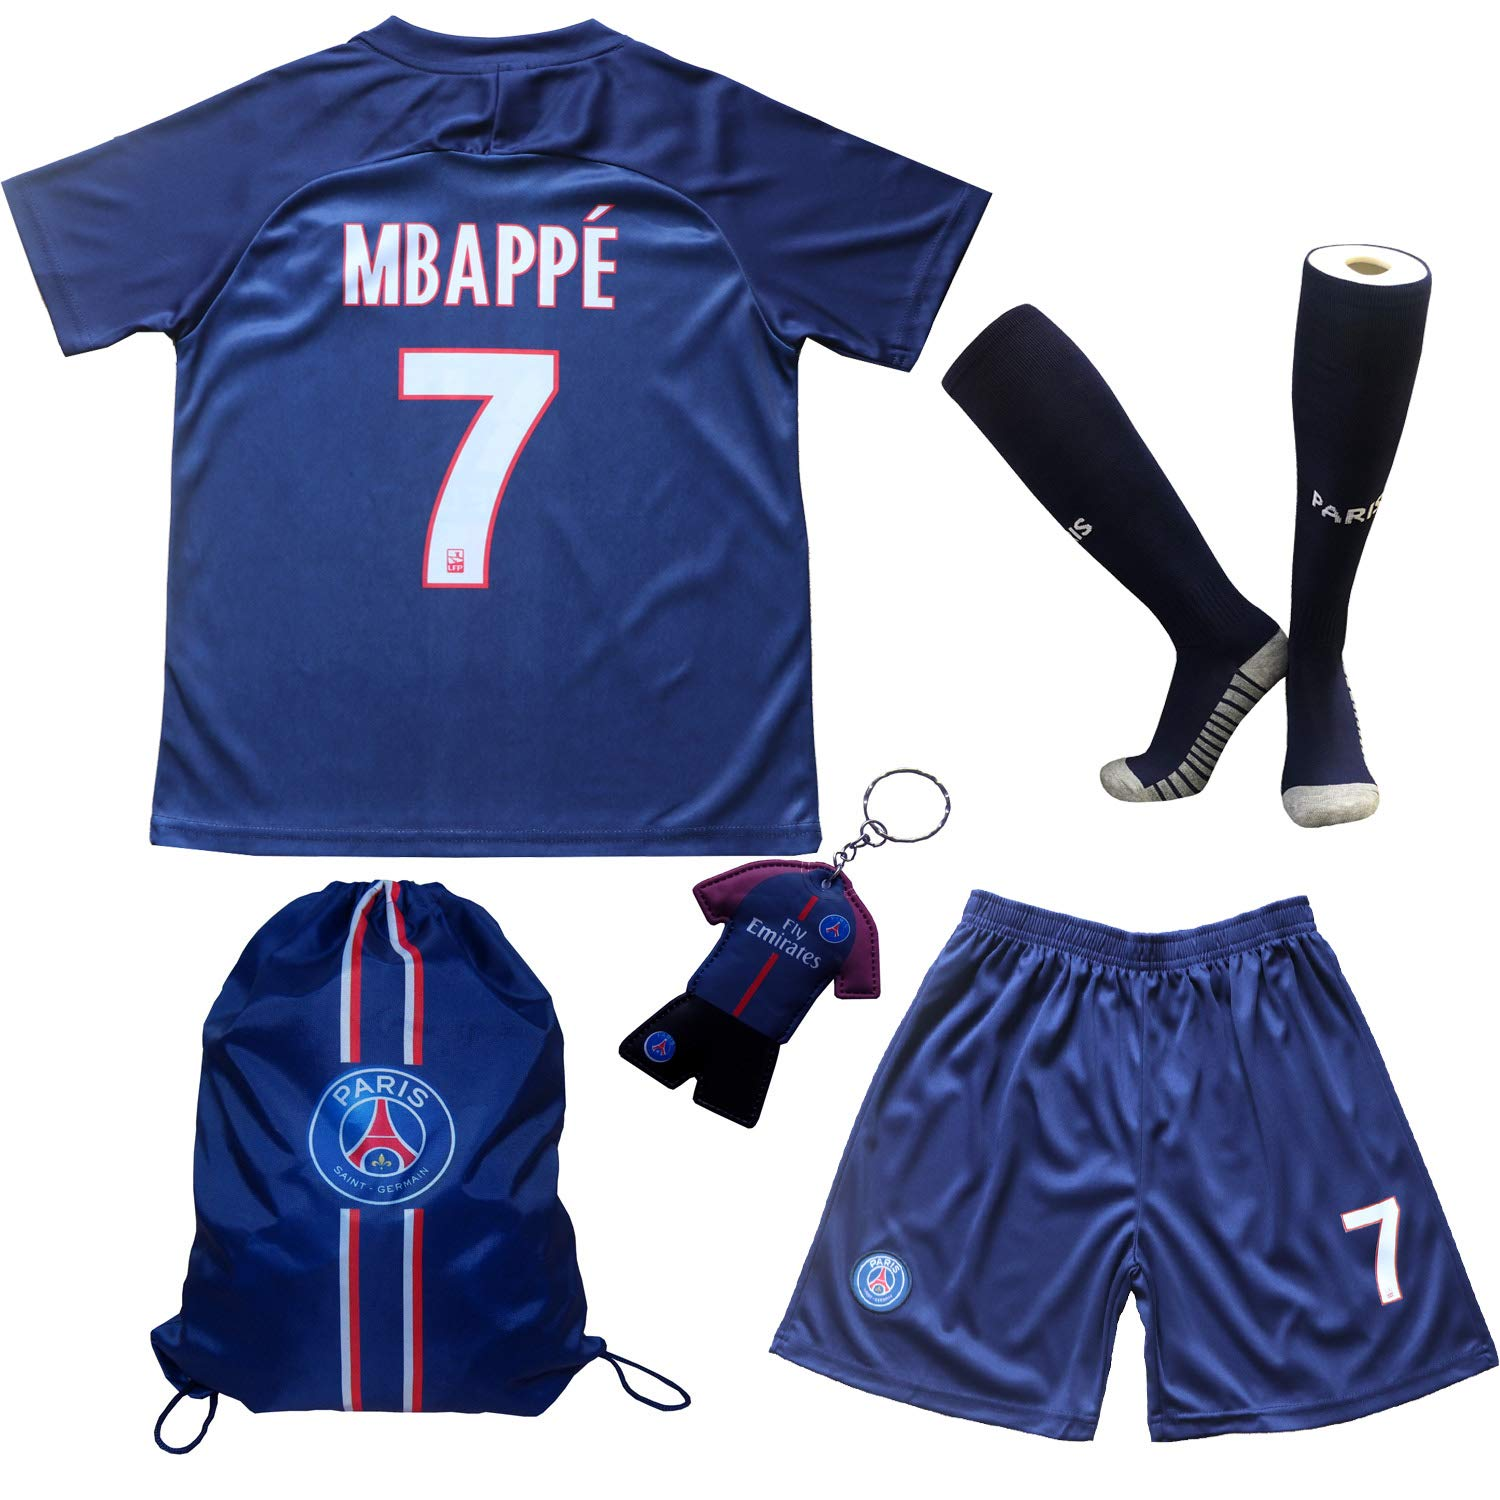 first rate 1e196 bfda9 LES TRICOT 2019/2020 Paris Home #7 MBAPPE Football Futbol Soccer Kids  Jersey Shorts Socks Set Youth Sizes